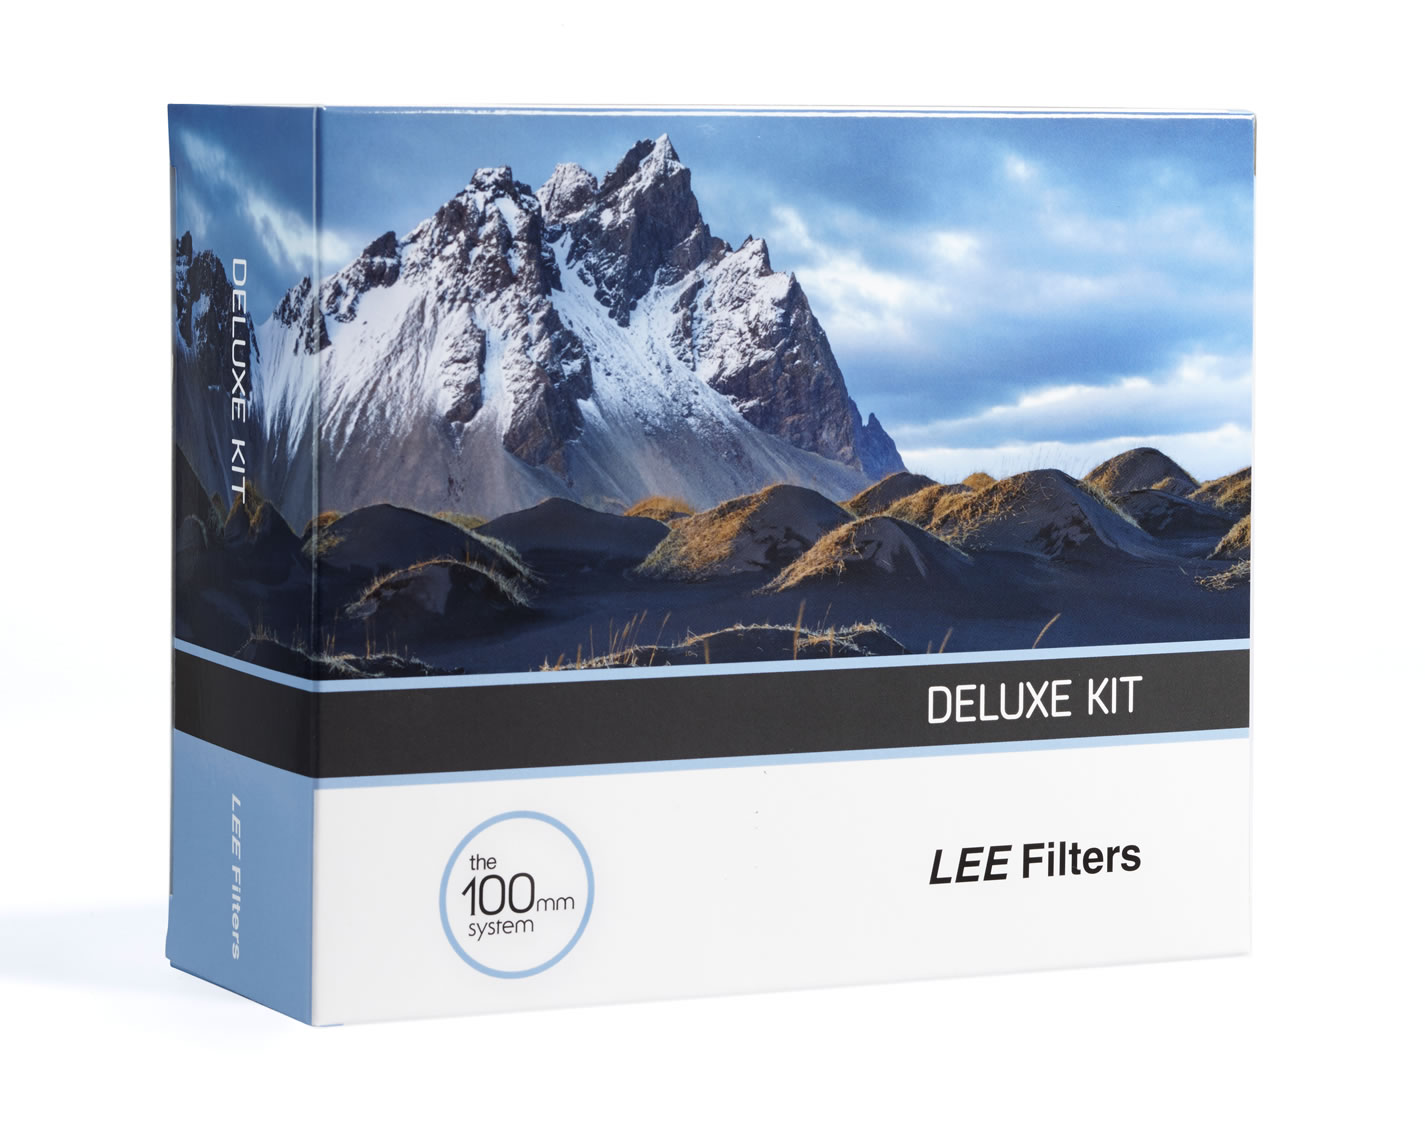 LEE 100mm Filter System • Deluxe Kit - FHDS - Lecuit